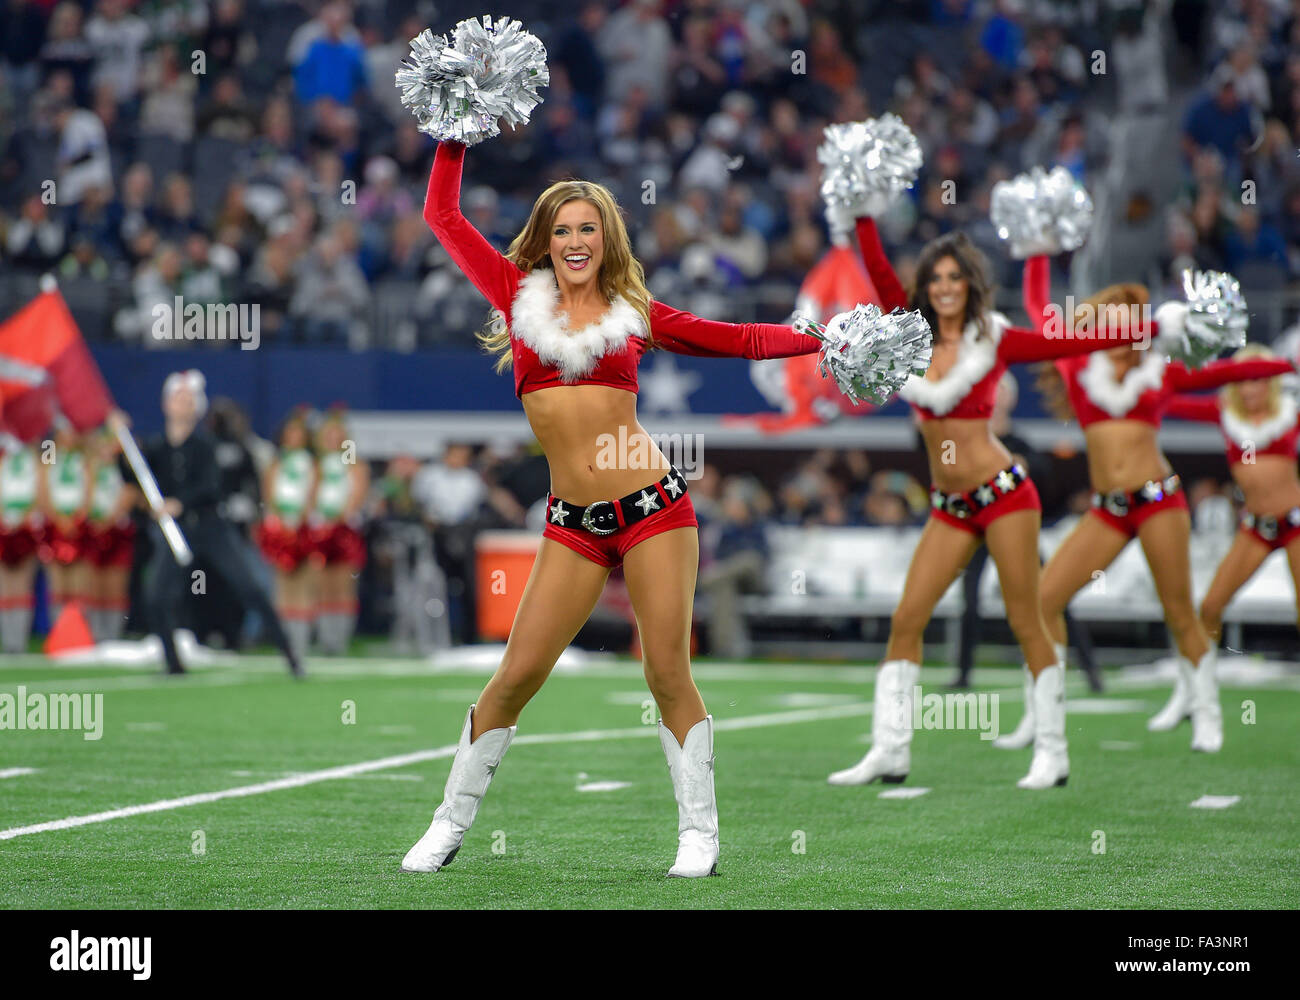 Nfl Cheerleader datieren Spieler